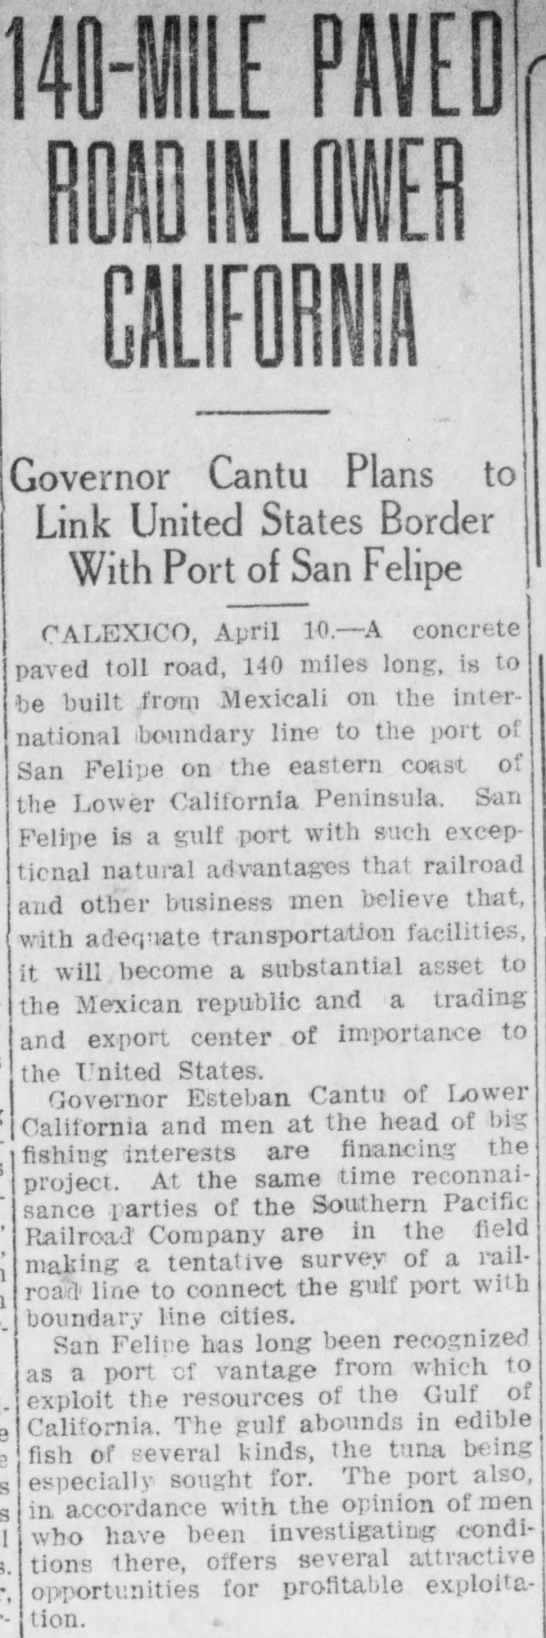 San Felipe 10 de abril de 1919 - ÏIMIE «0 ■ in un BUM Governor Cantu Plans to...